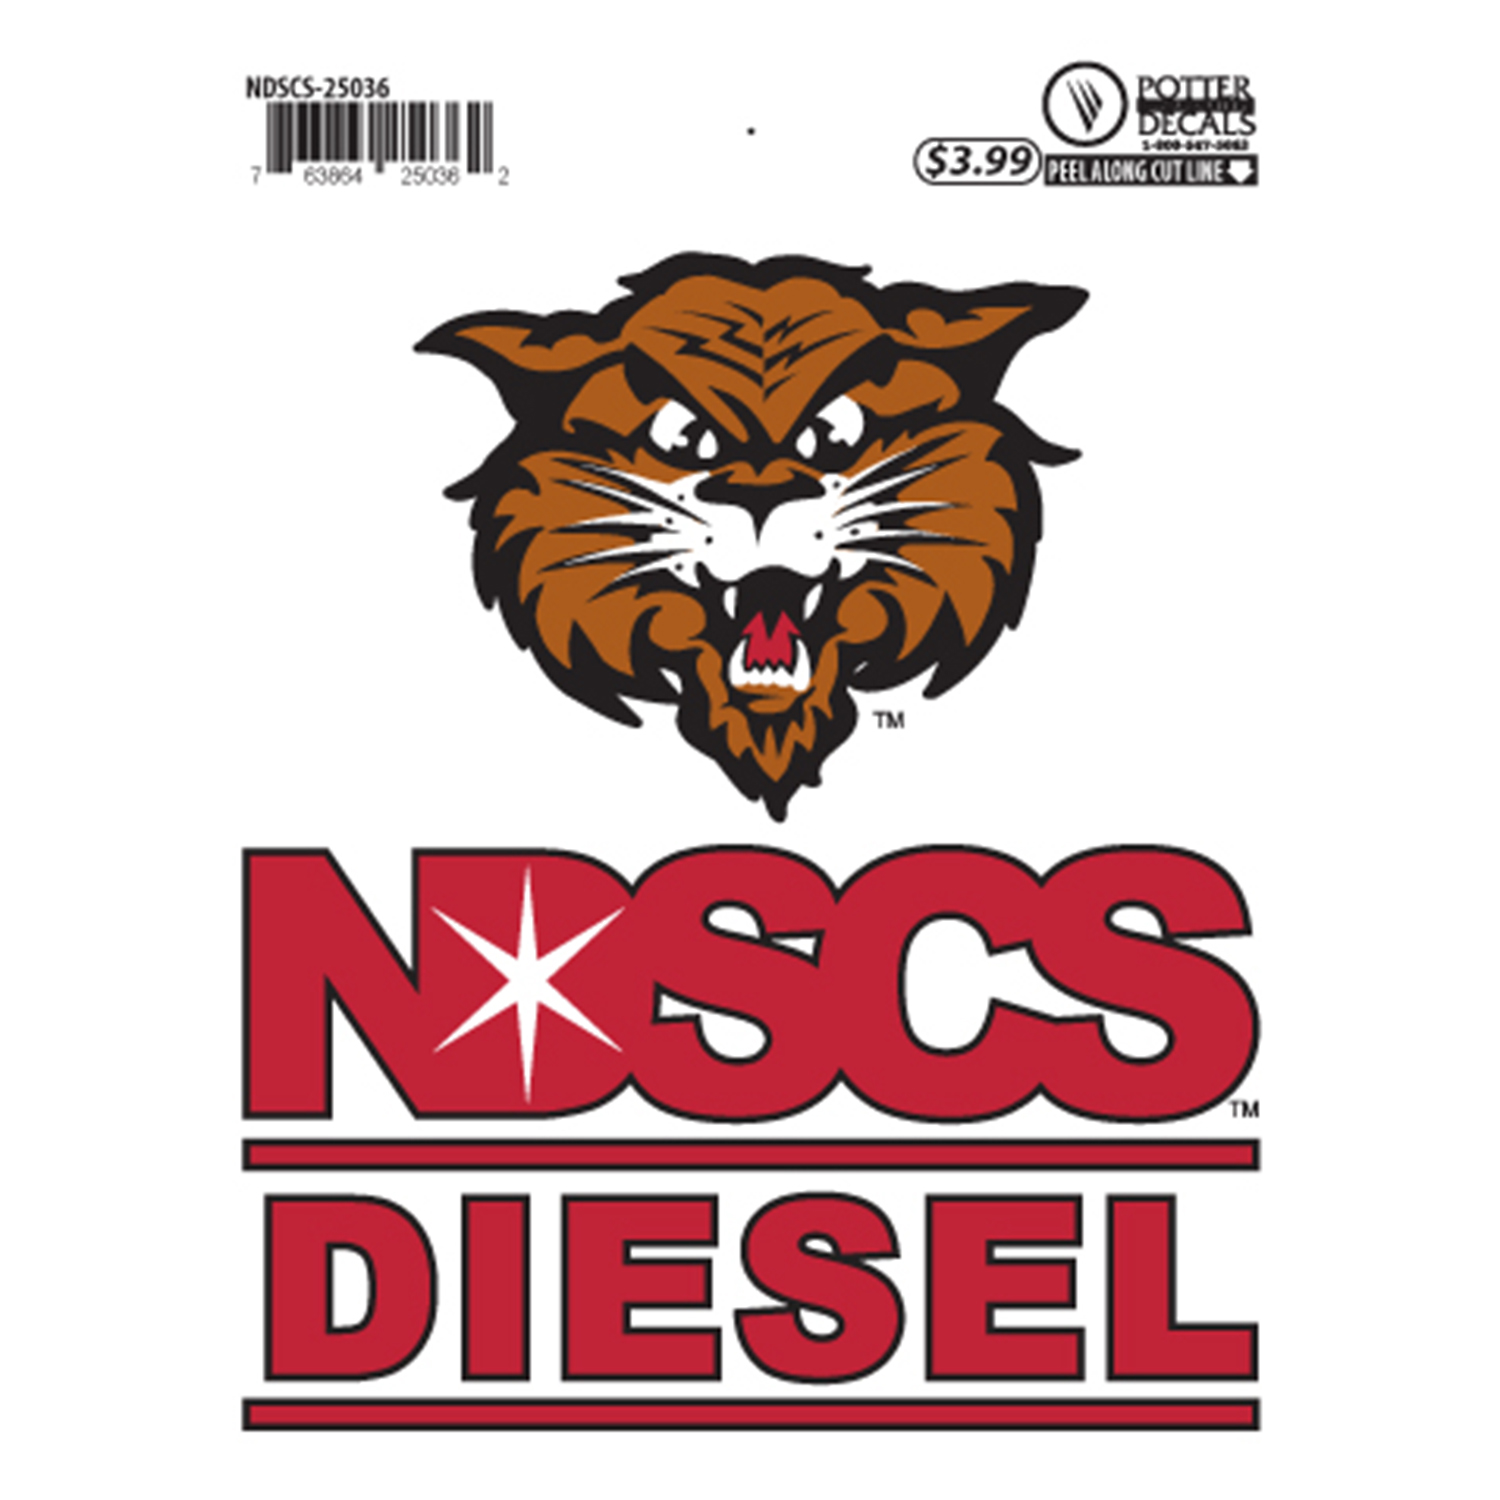 "Image For ""Diesel"" Decal by Potter"